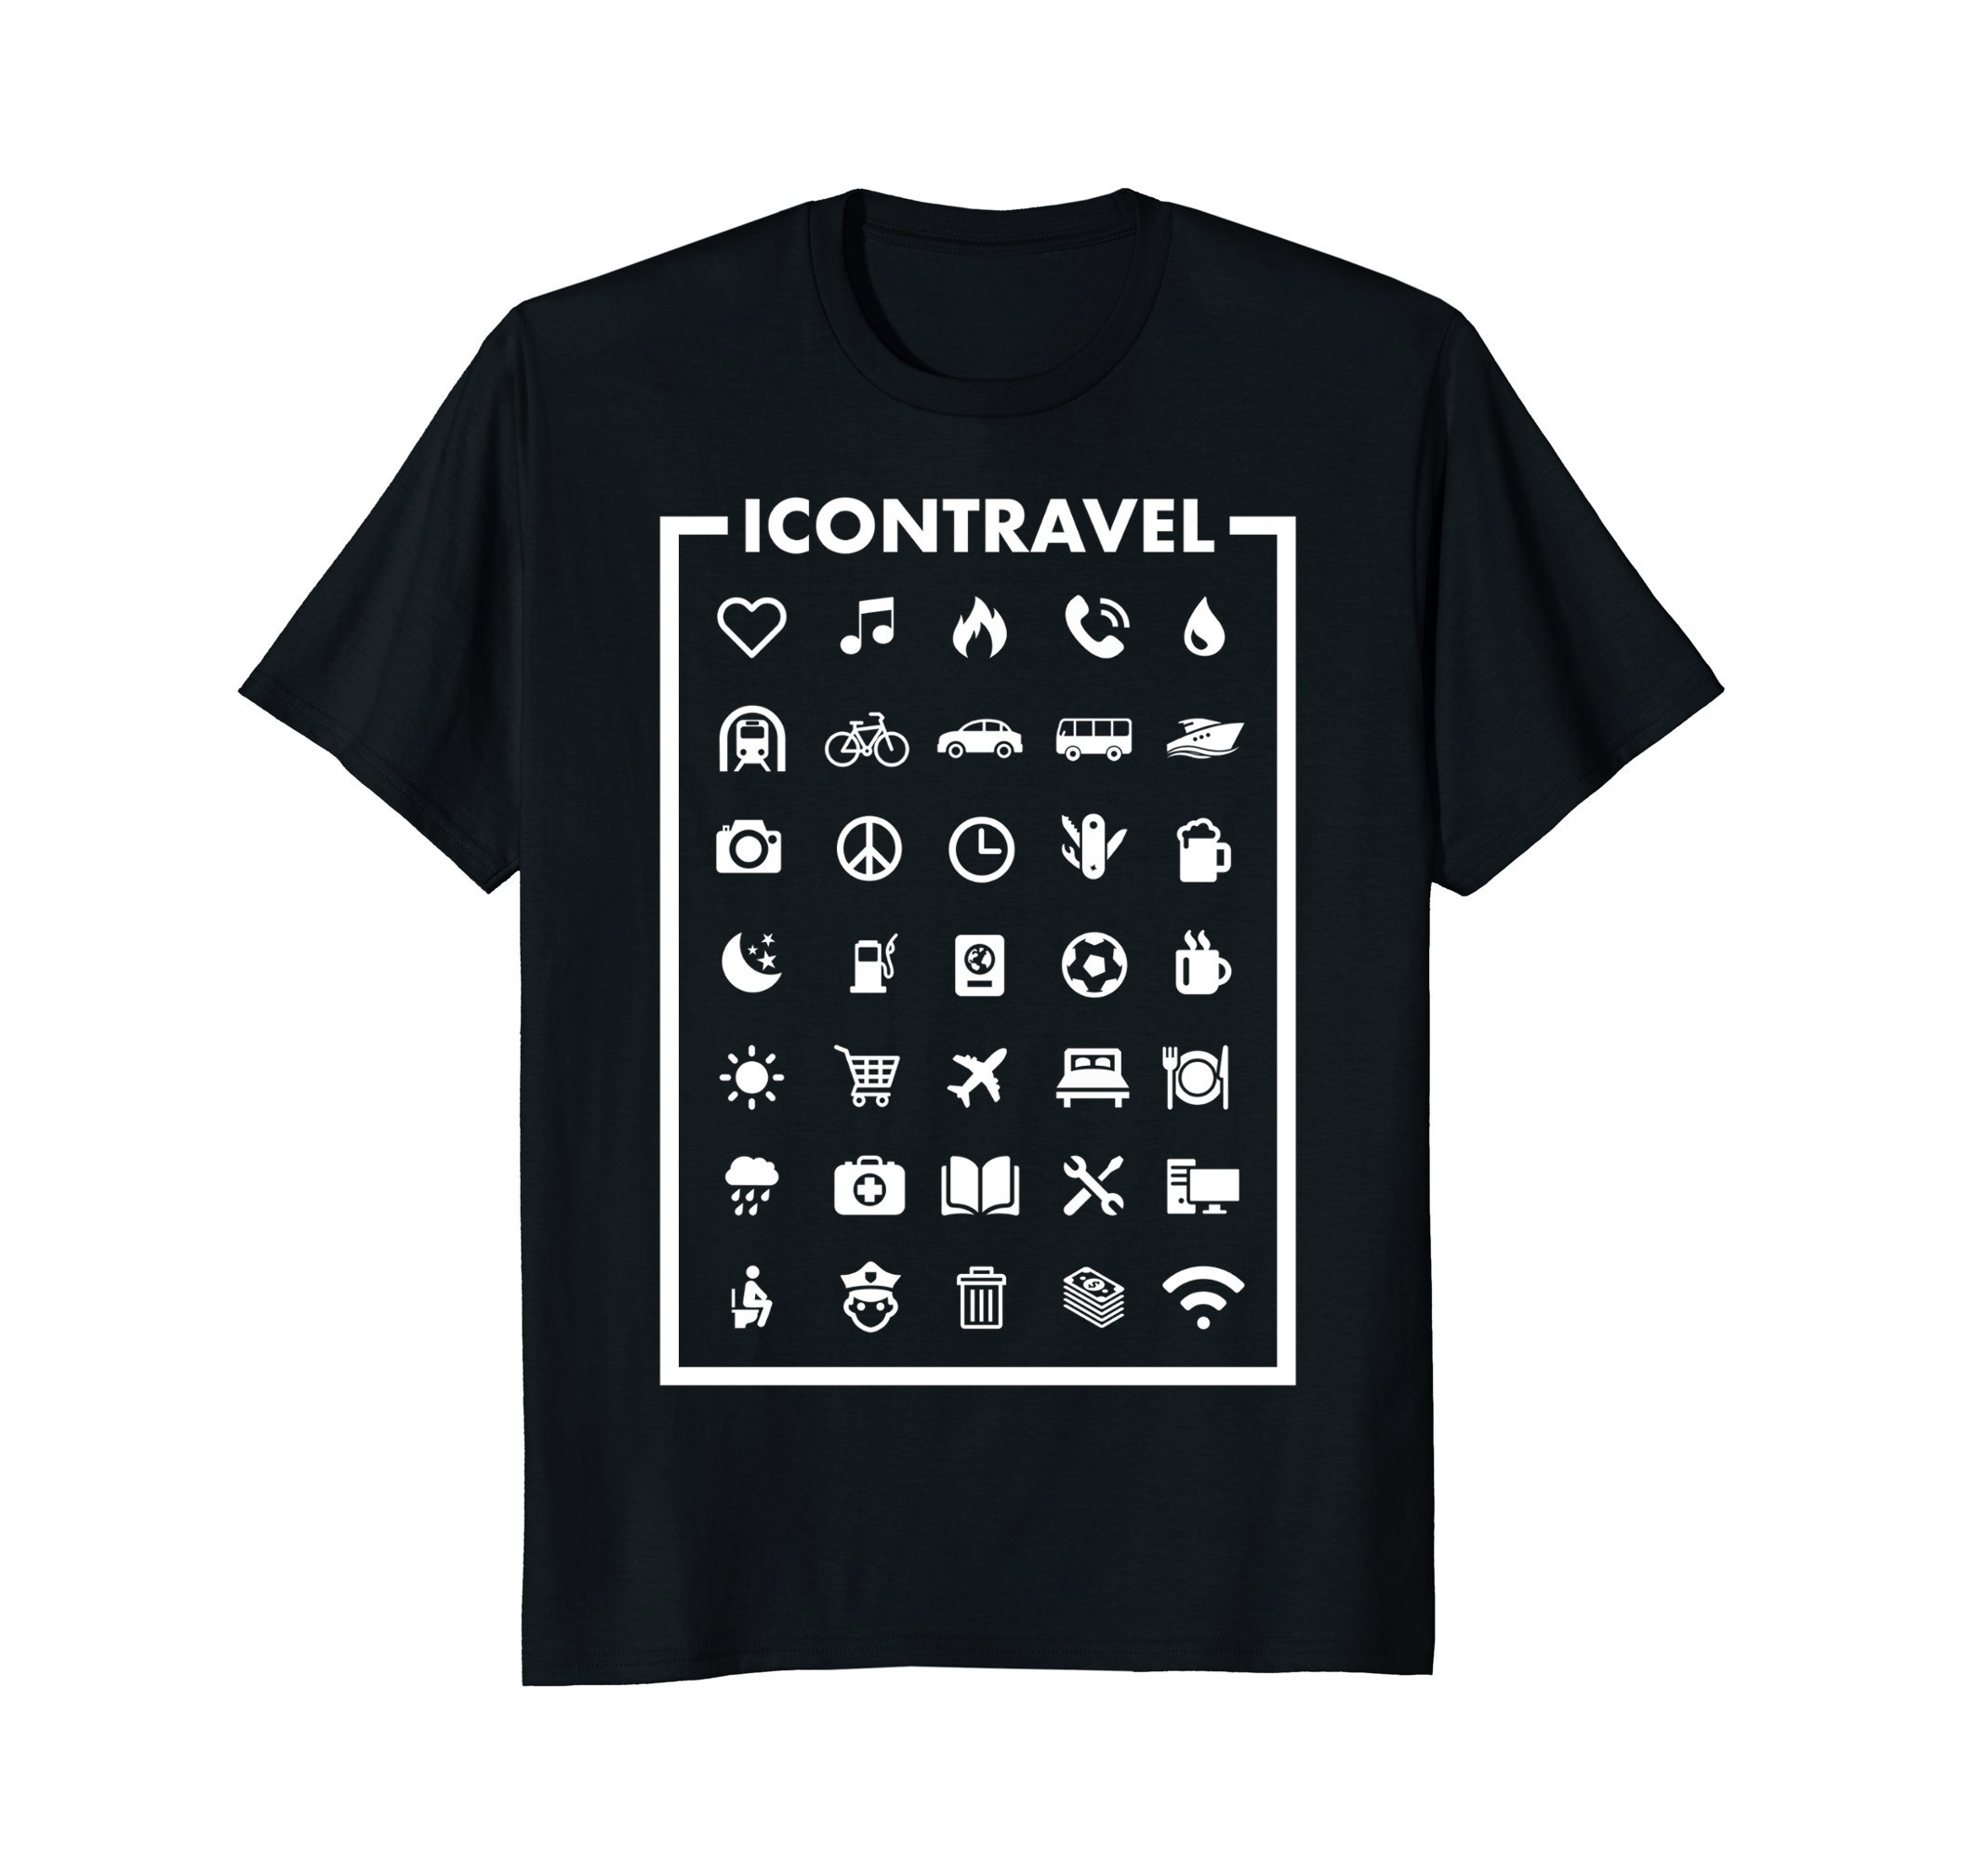 Icon Travel Shirt - Speak with Icons! Funny T-Shirt Gift